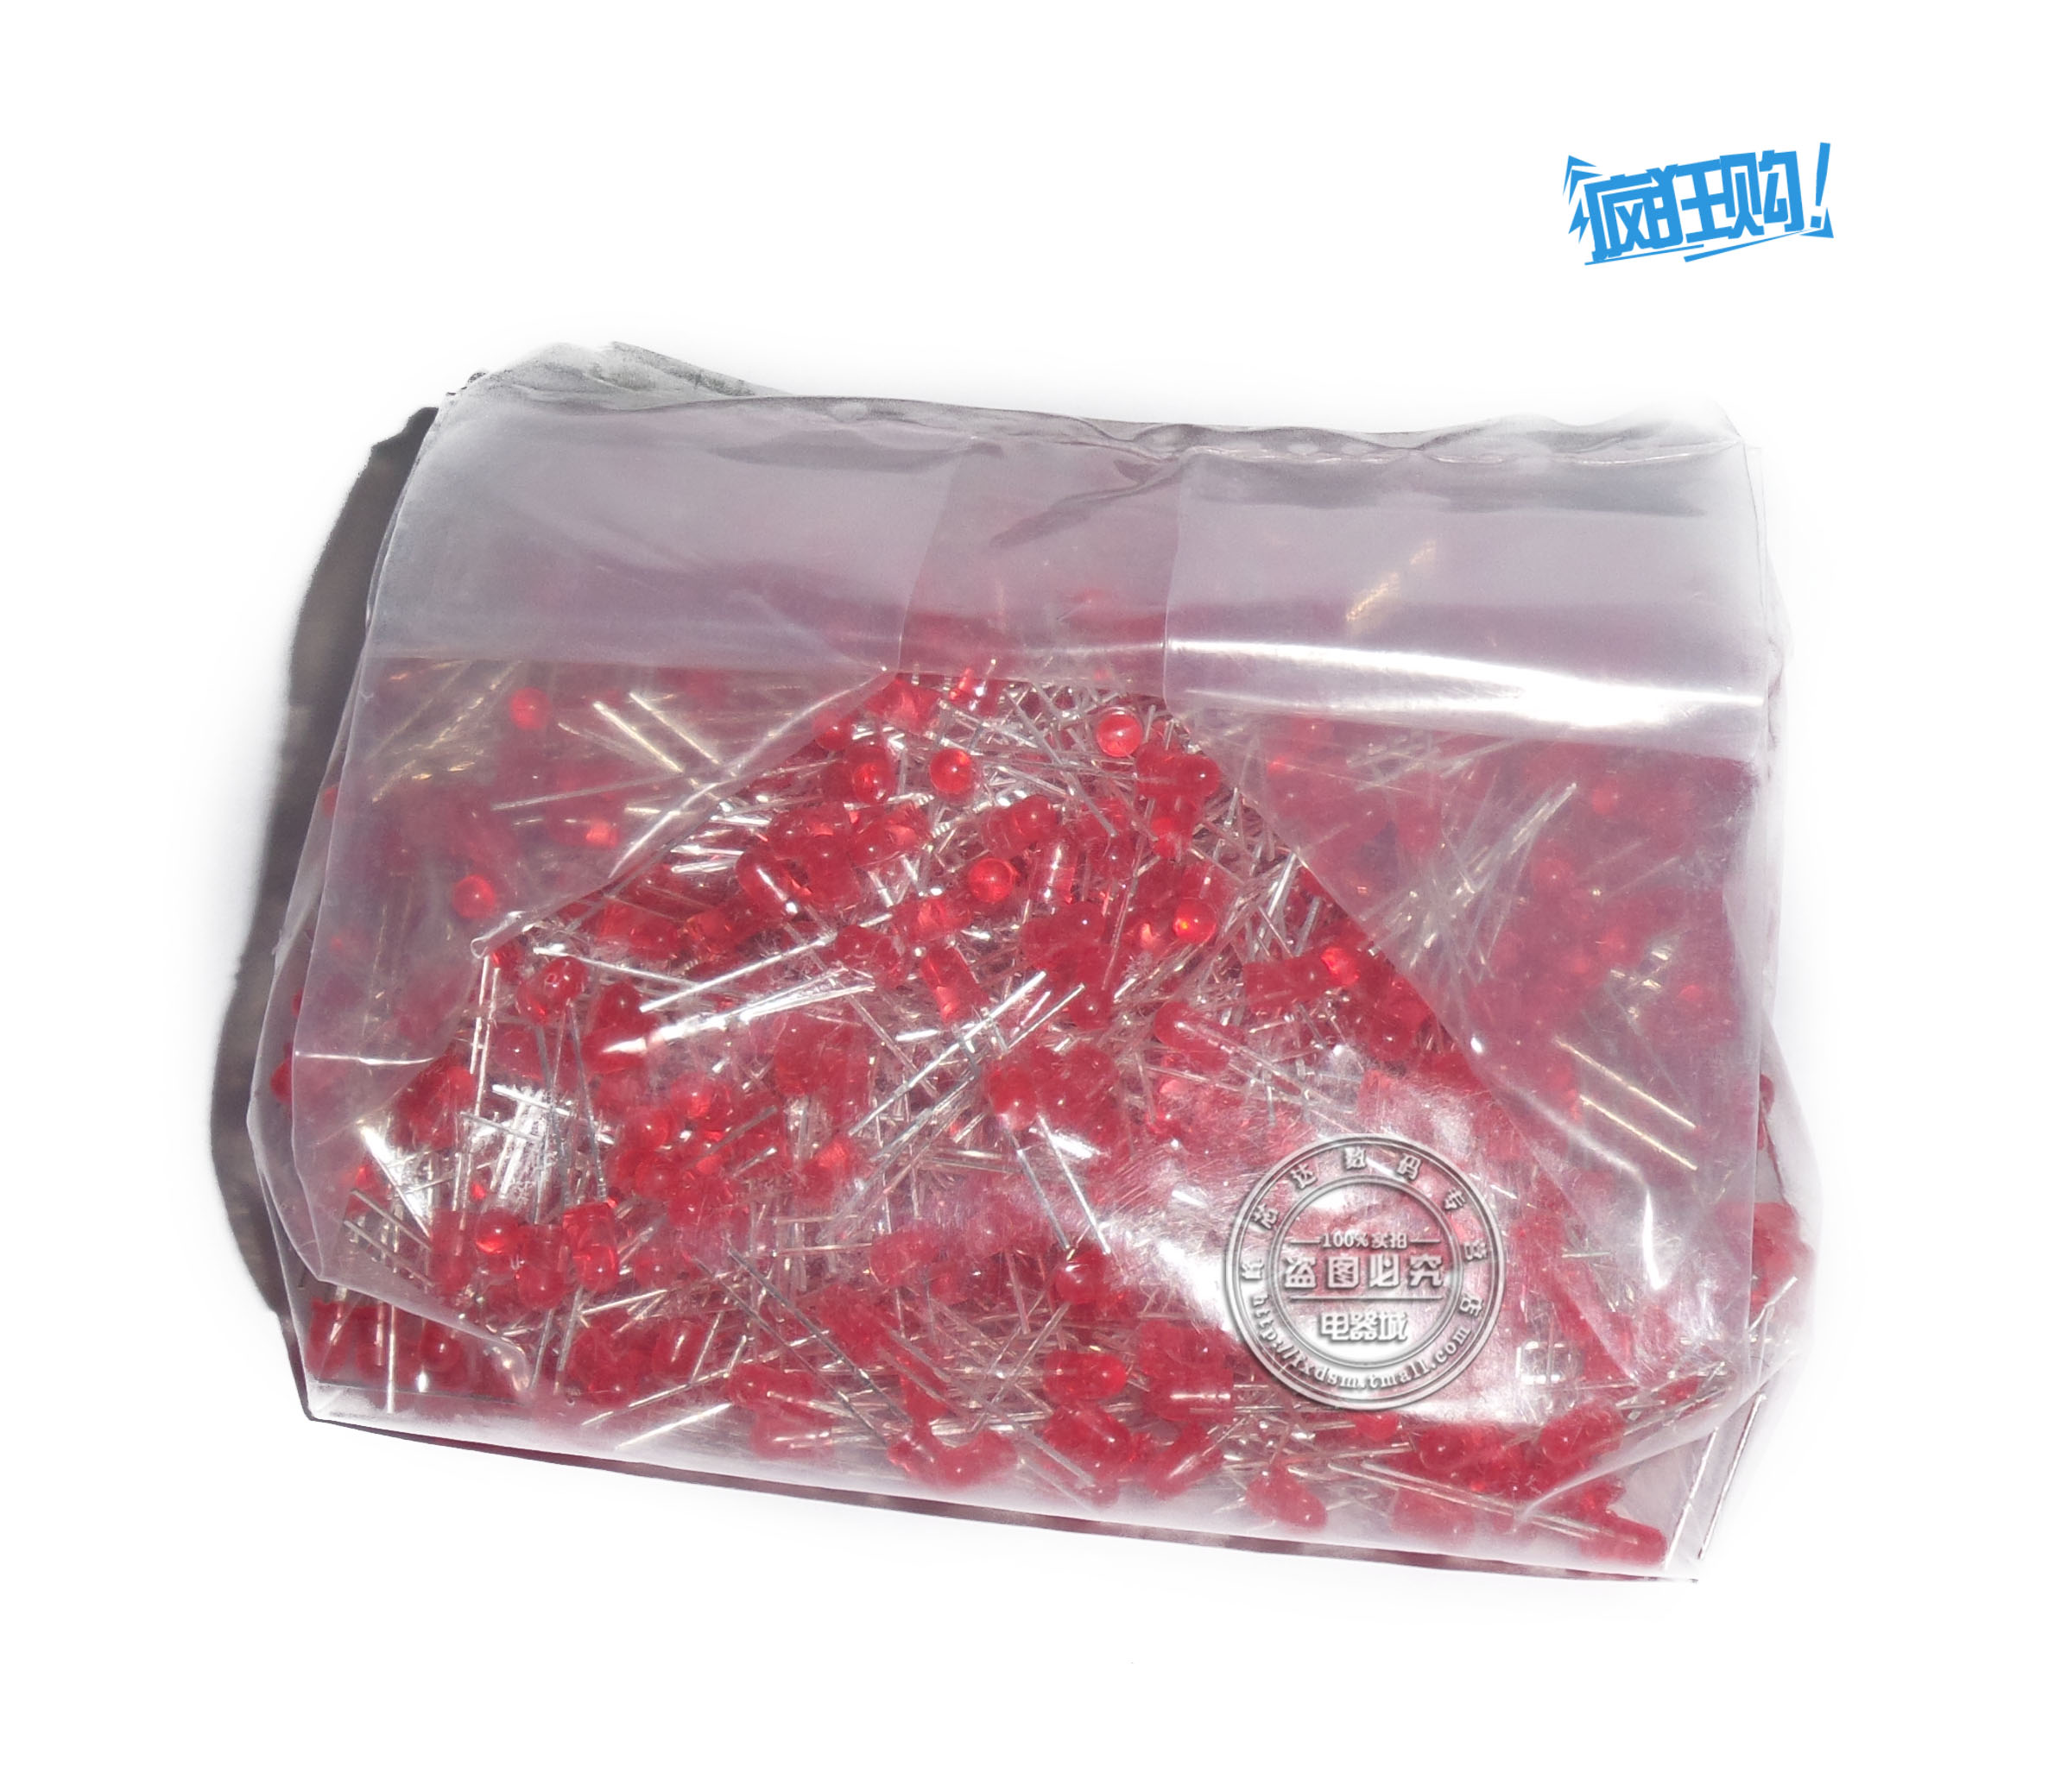 Rui broadcast shu red led lights red red bright led light emitting diode 3 MM a pack of 1000